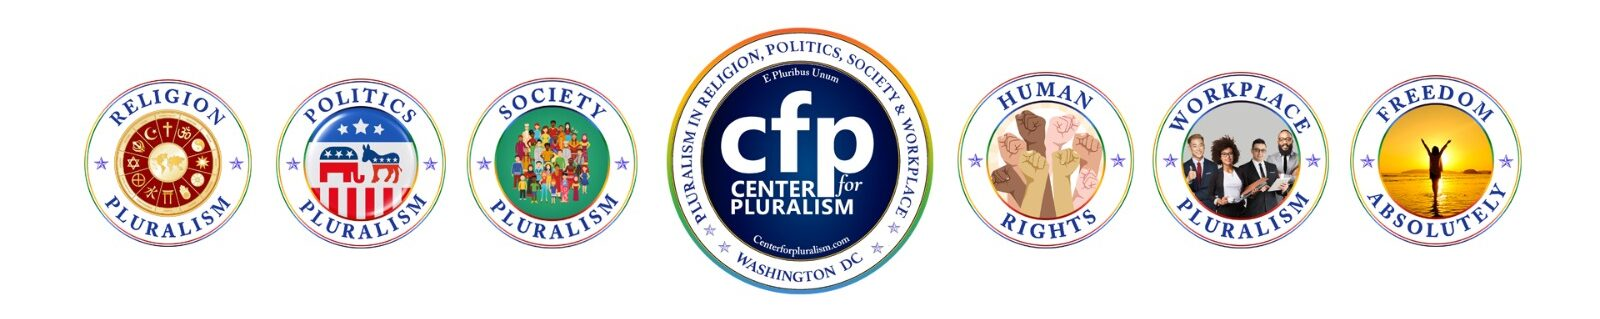 Center for Pluralism